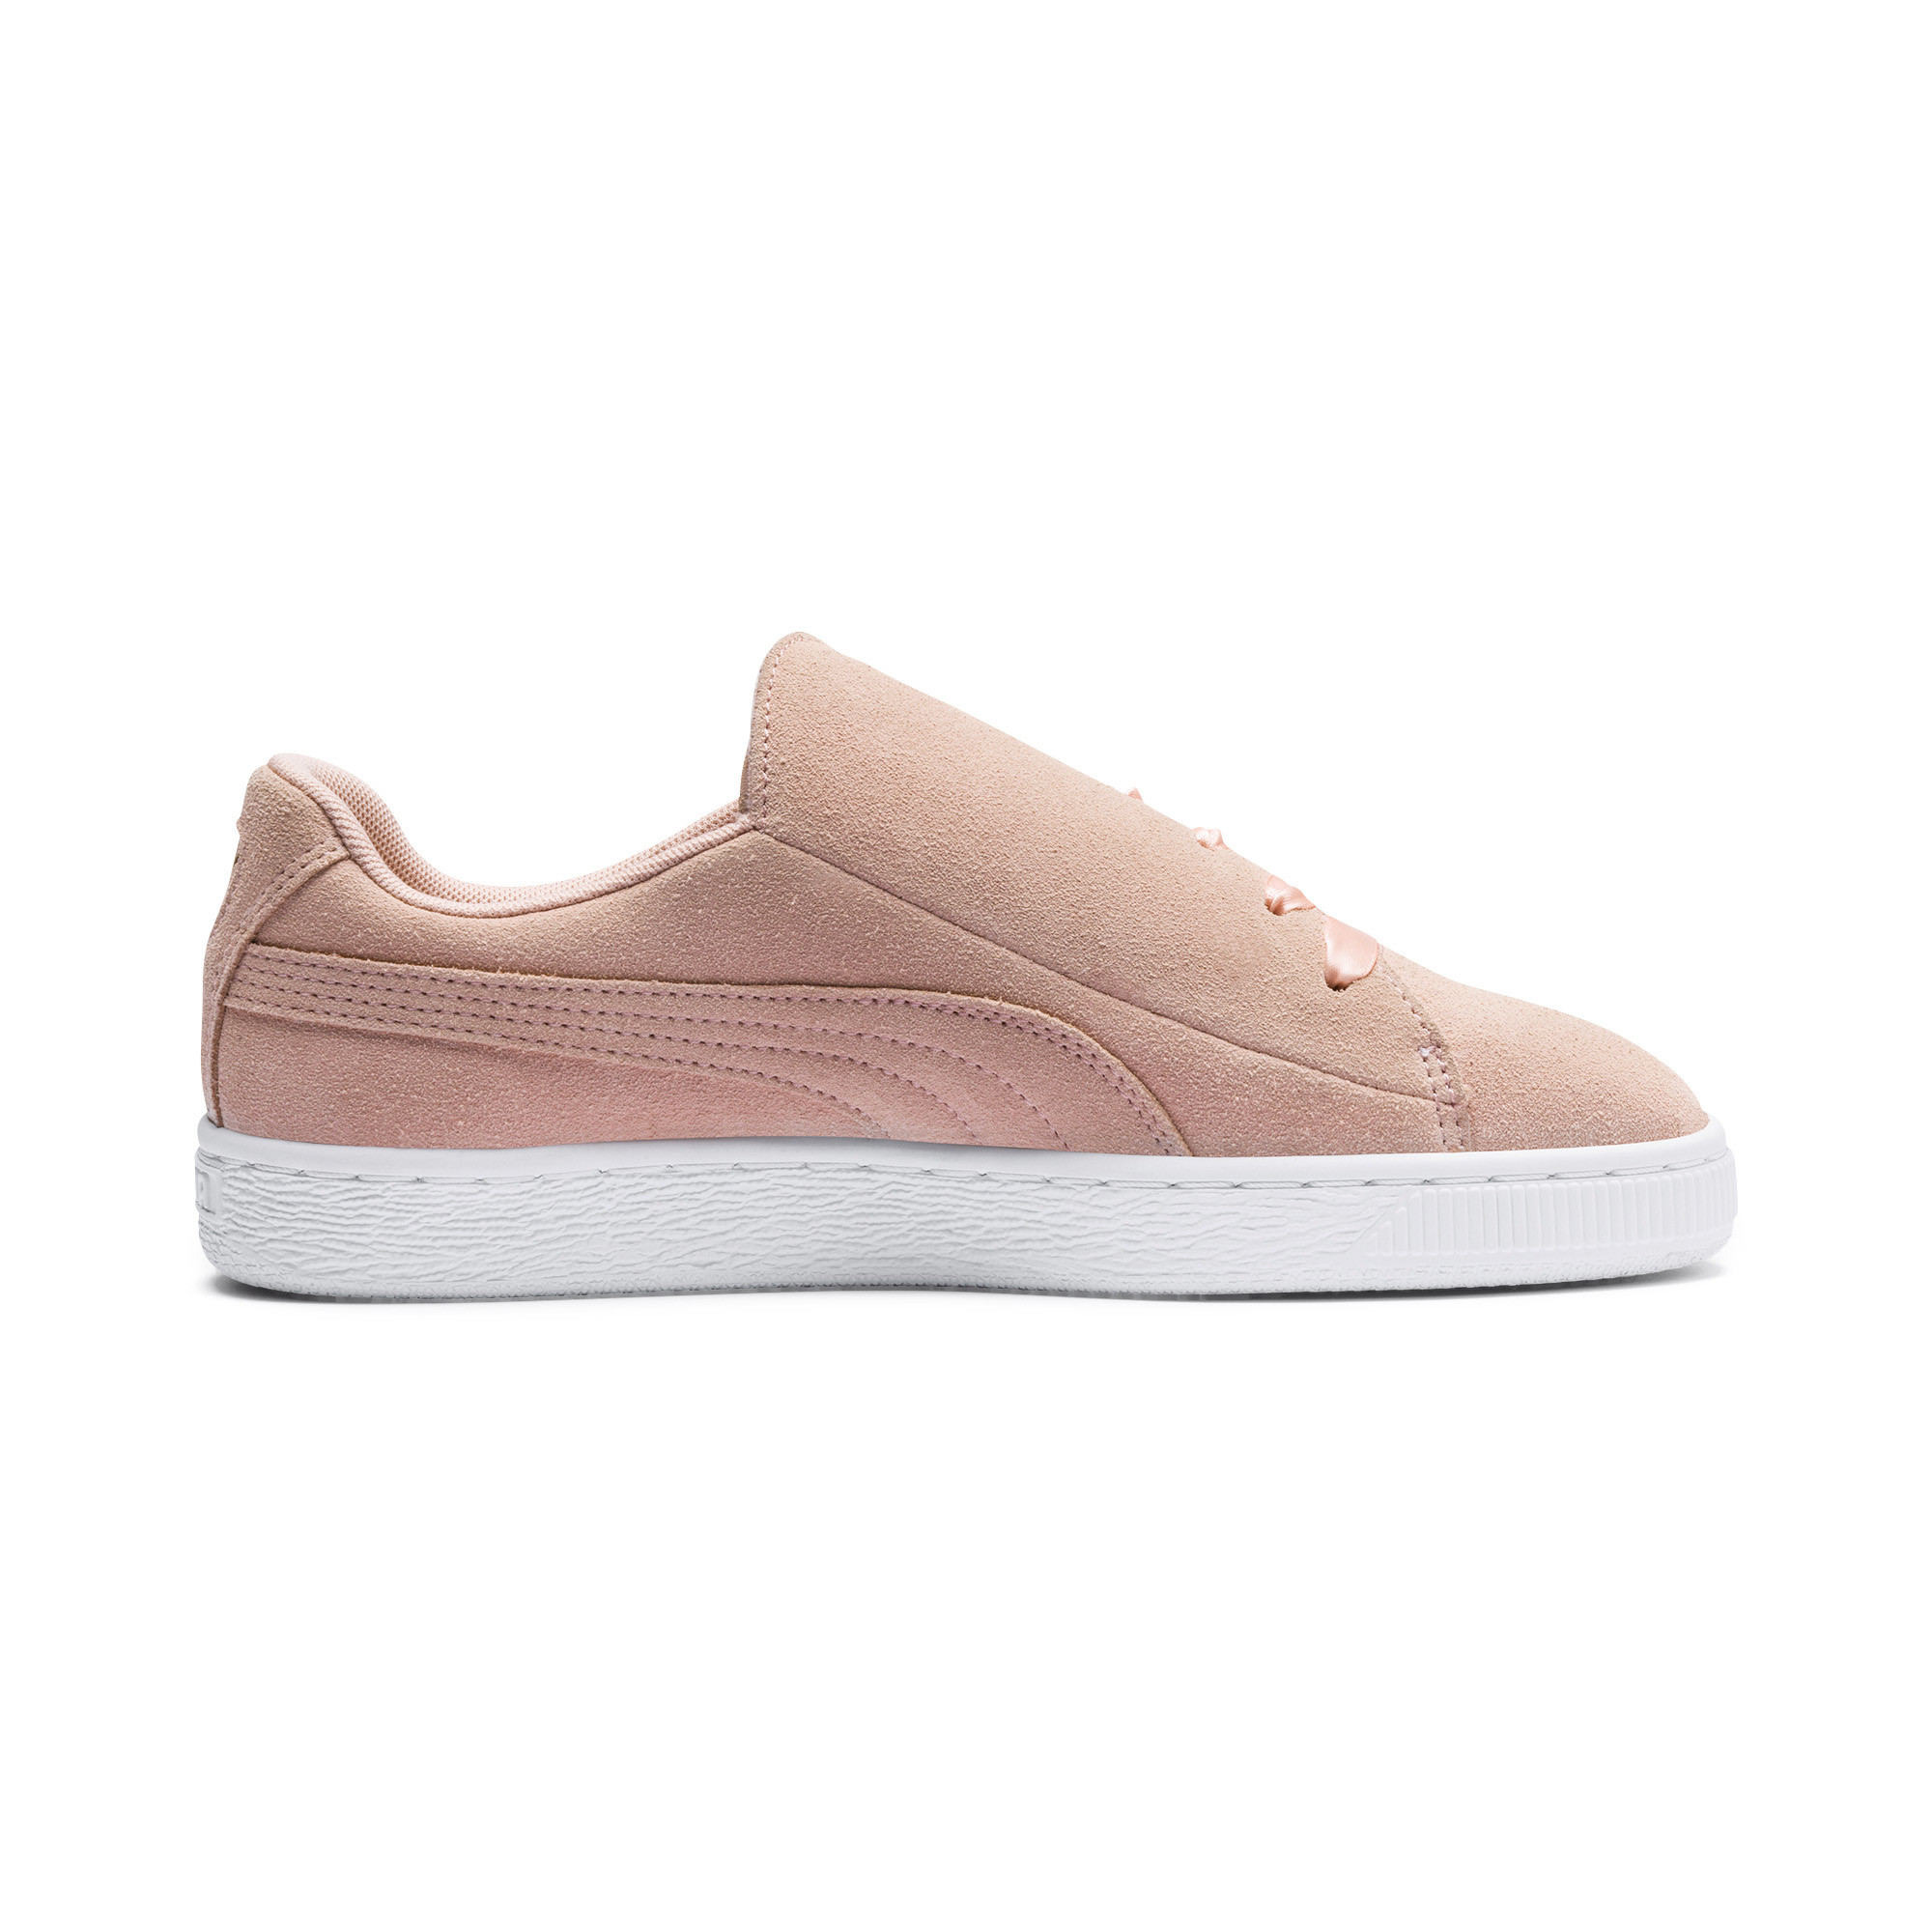 Image Puma Suede Crush Women's Sneakers #5